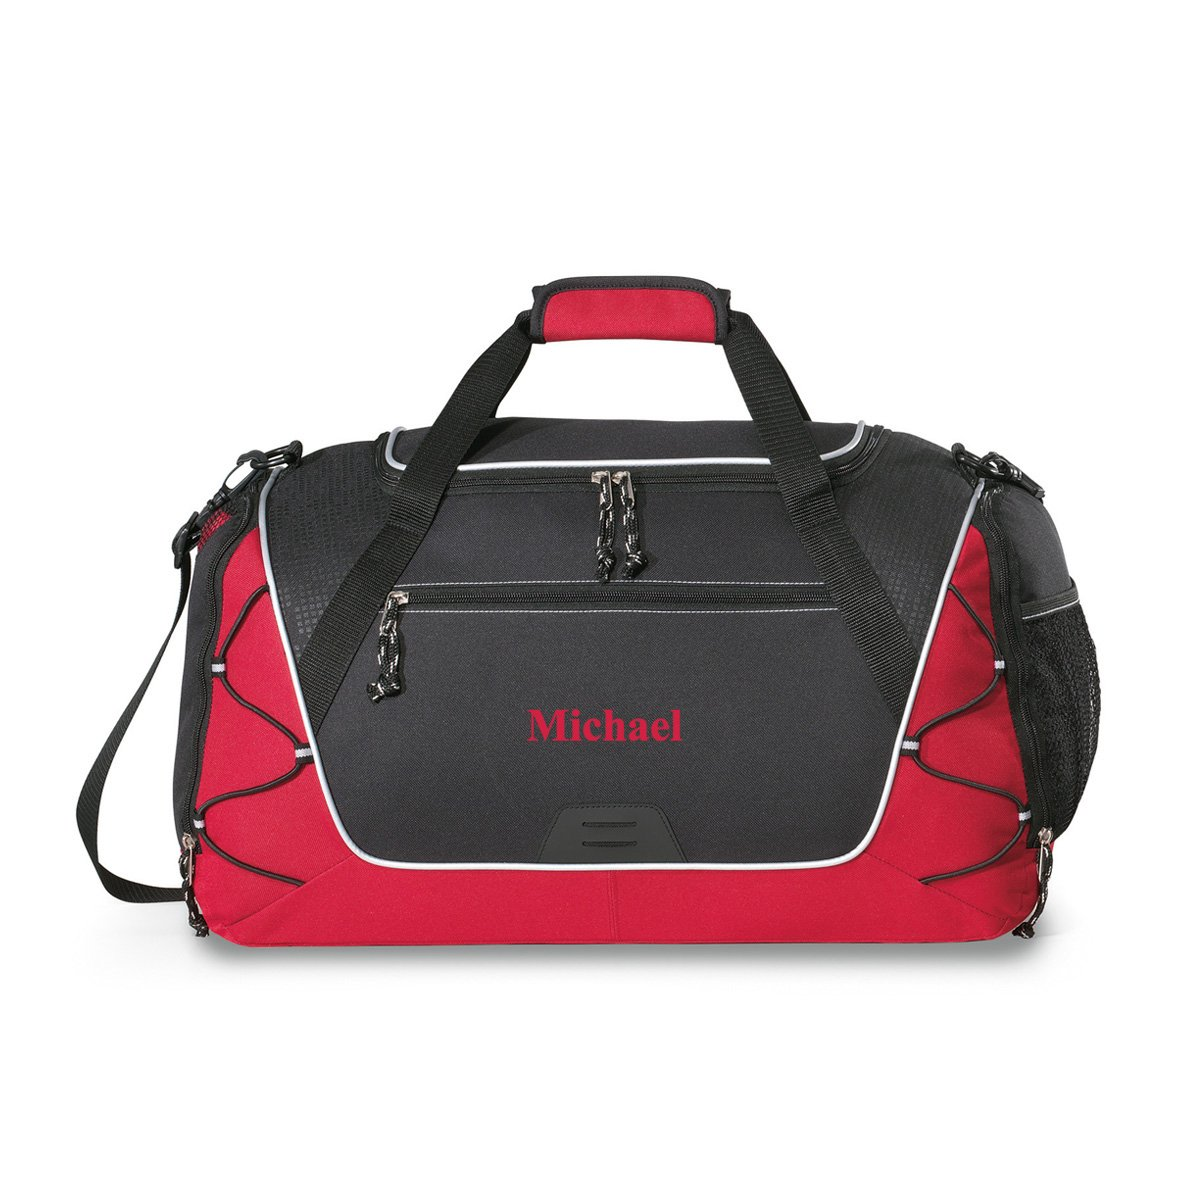 270a1c254a4c Amazon.com  Personalized Sports Duffel Bag - Personalized Gym Bag -  Monogrammed Sports Duffel Bag - Red Thread  Sports   Outdoors